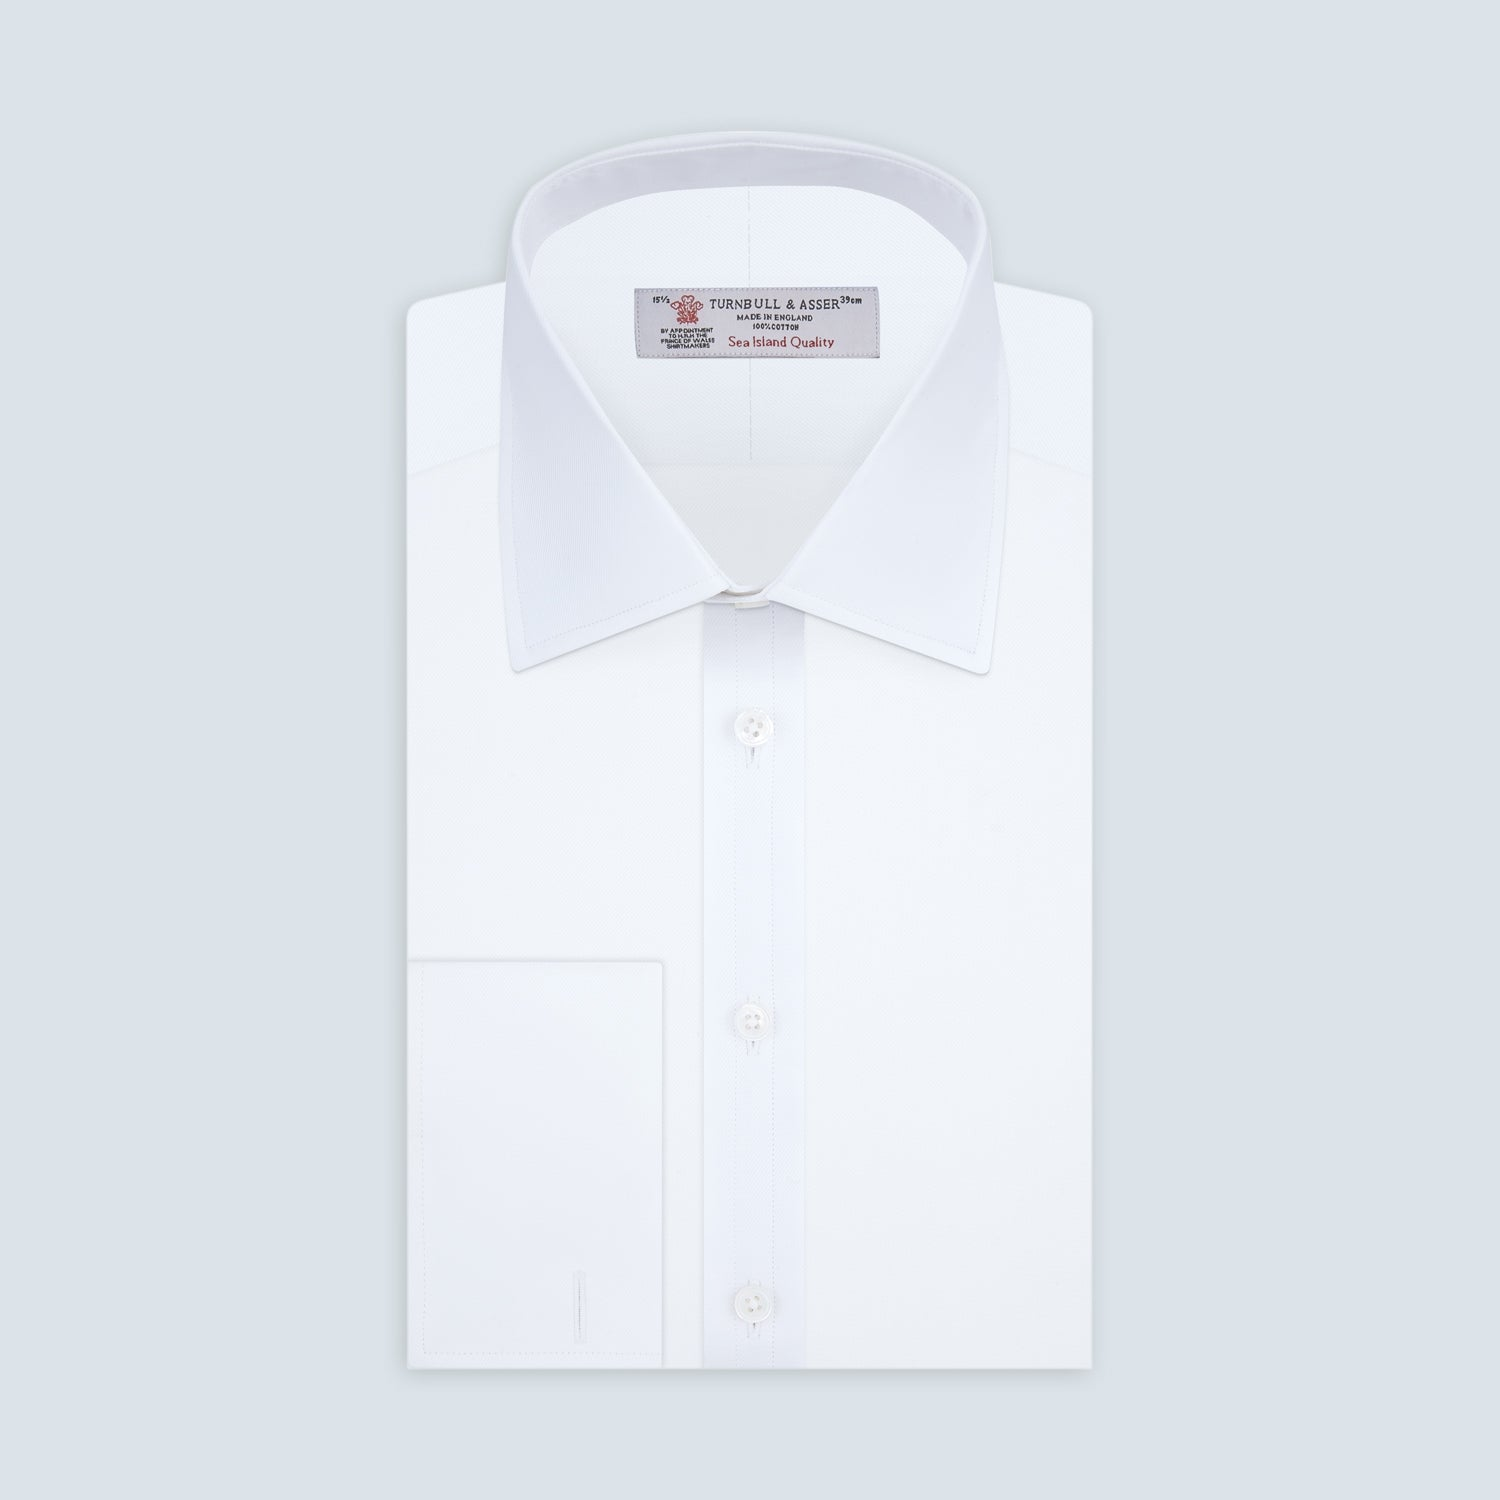 White Sea Island Quality Cotton Twill Shirt with T&A Collar and 3-Button Cuffs